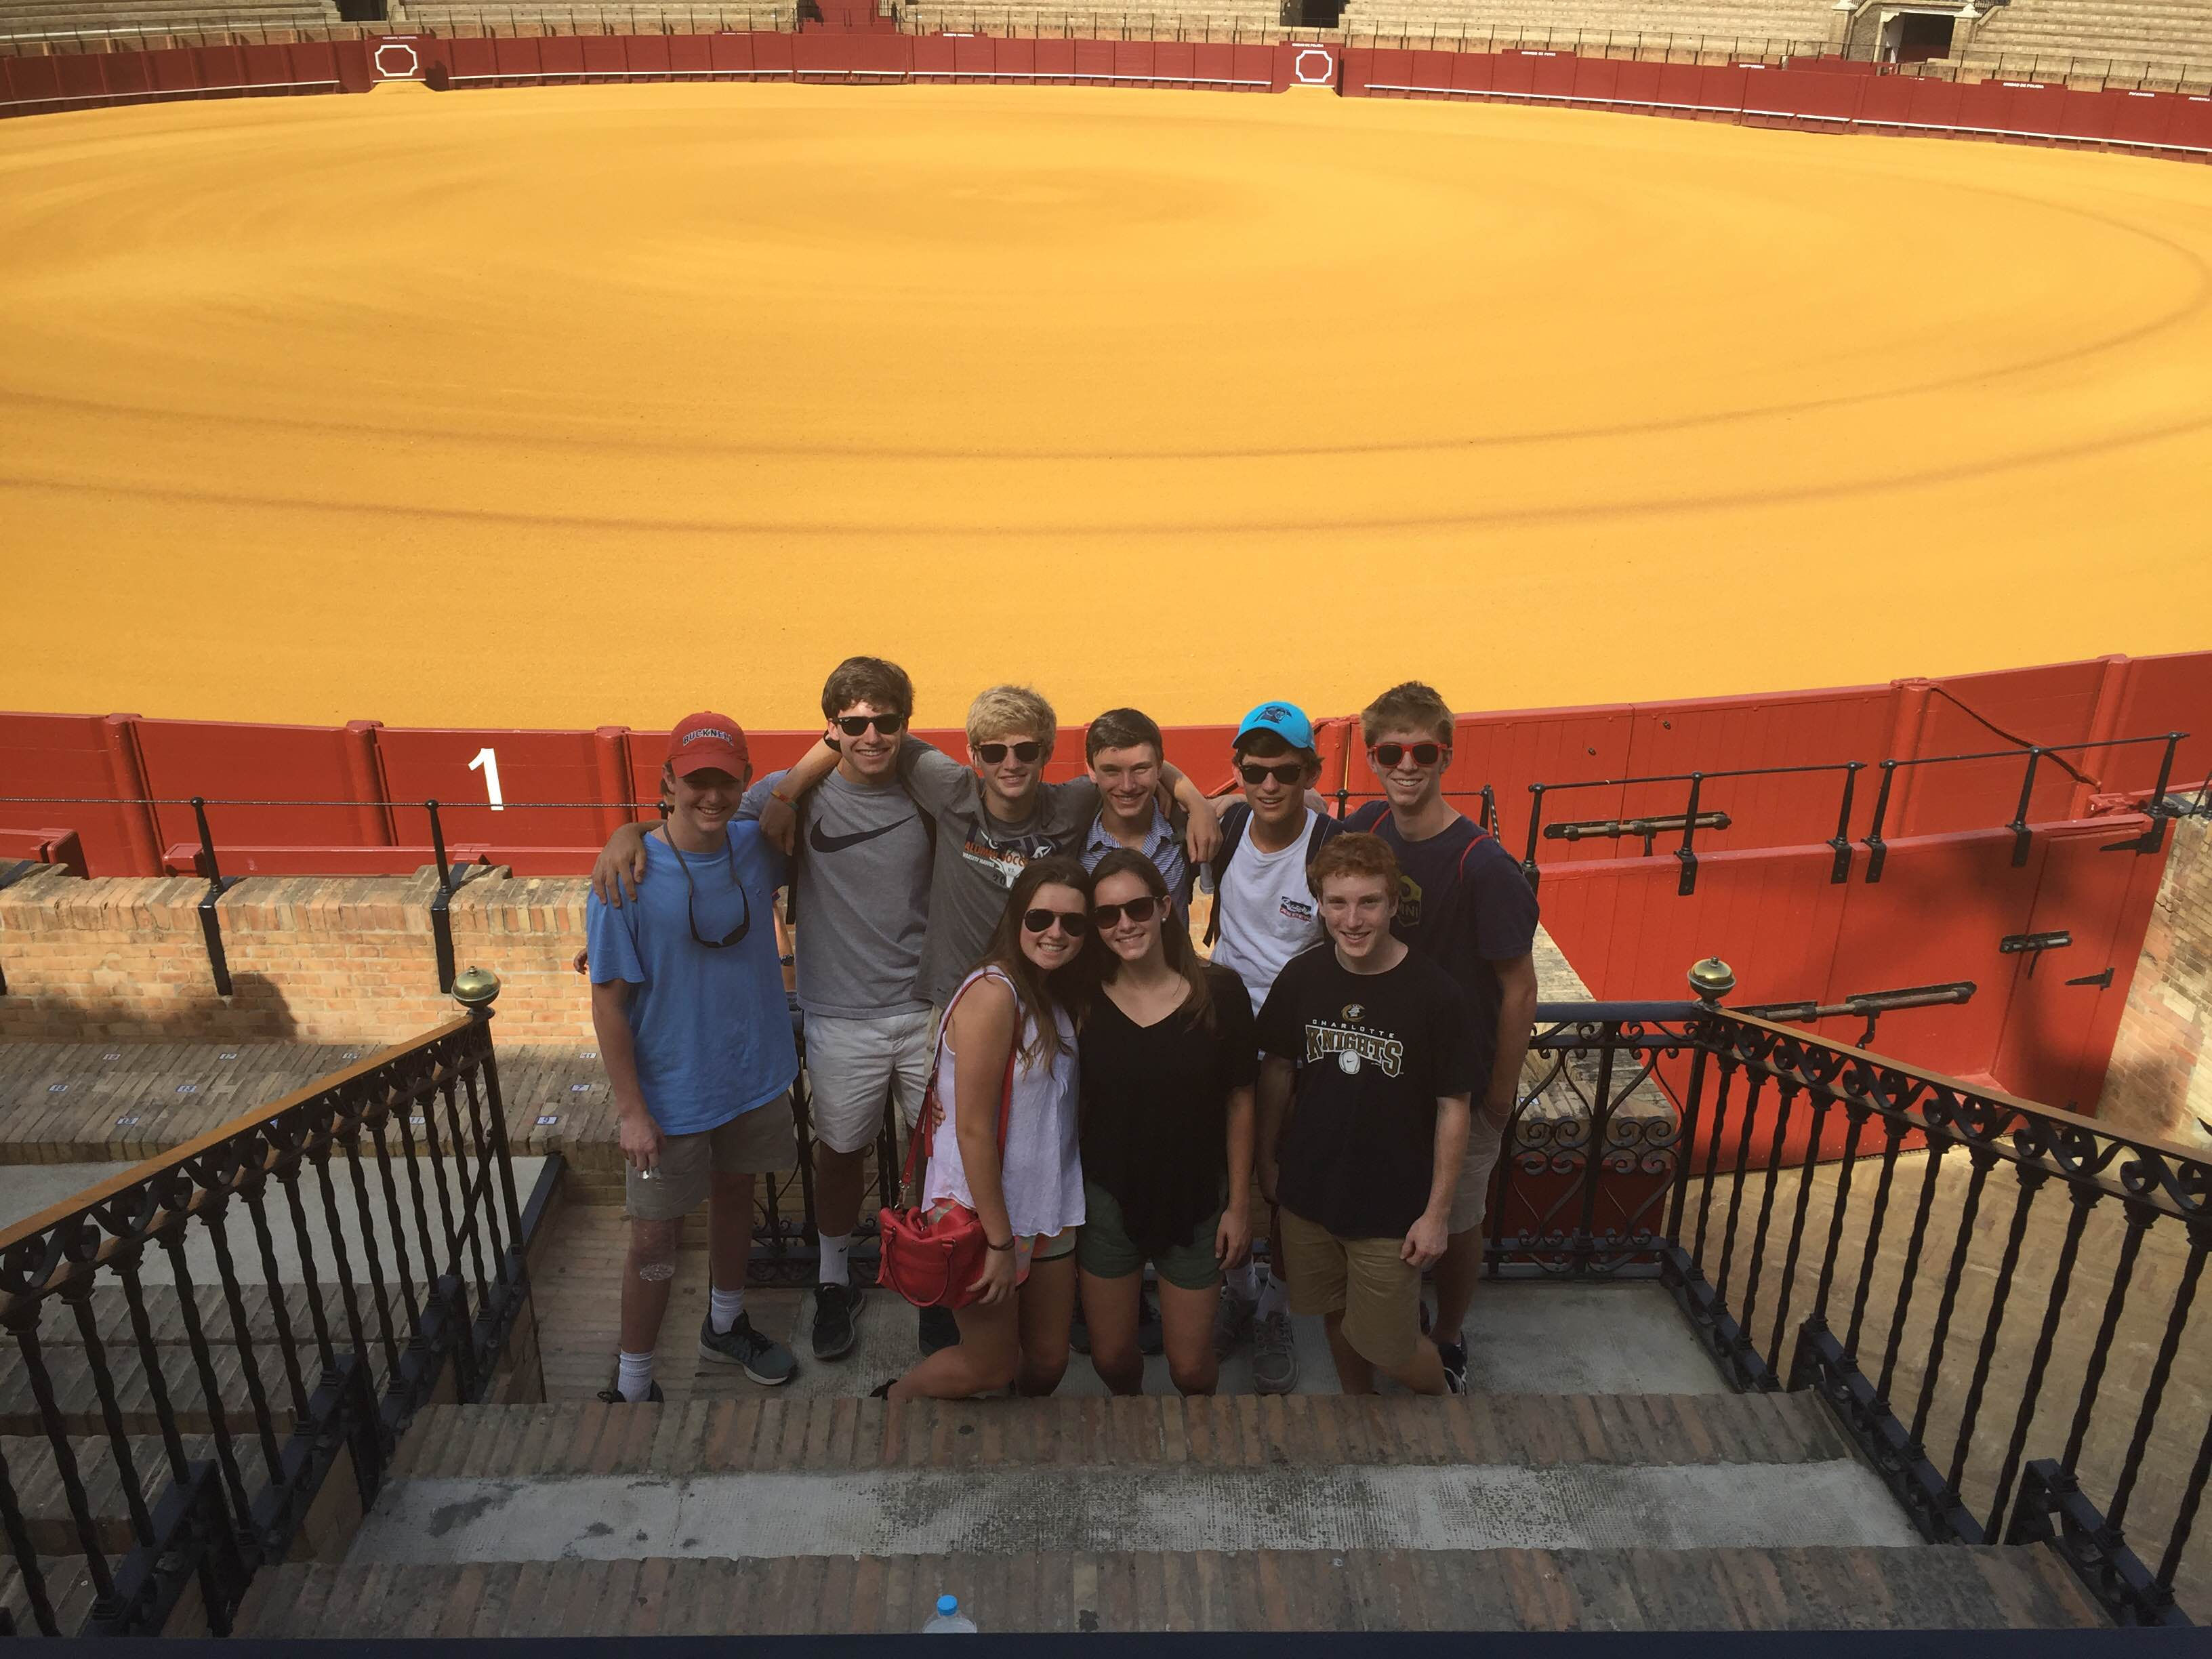 Charlotte Latin School goes to the Plaza de Toros